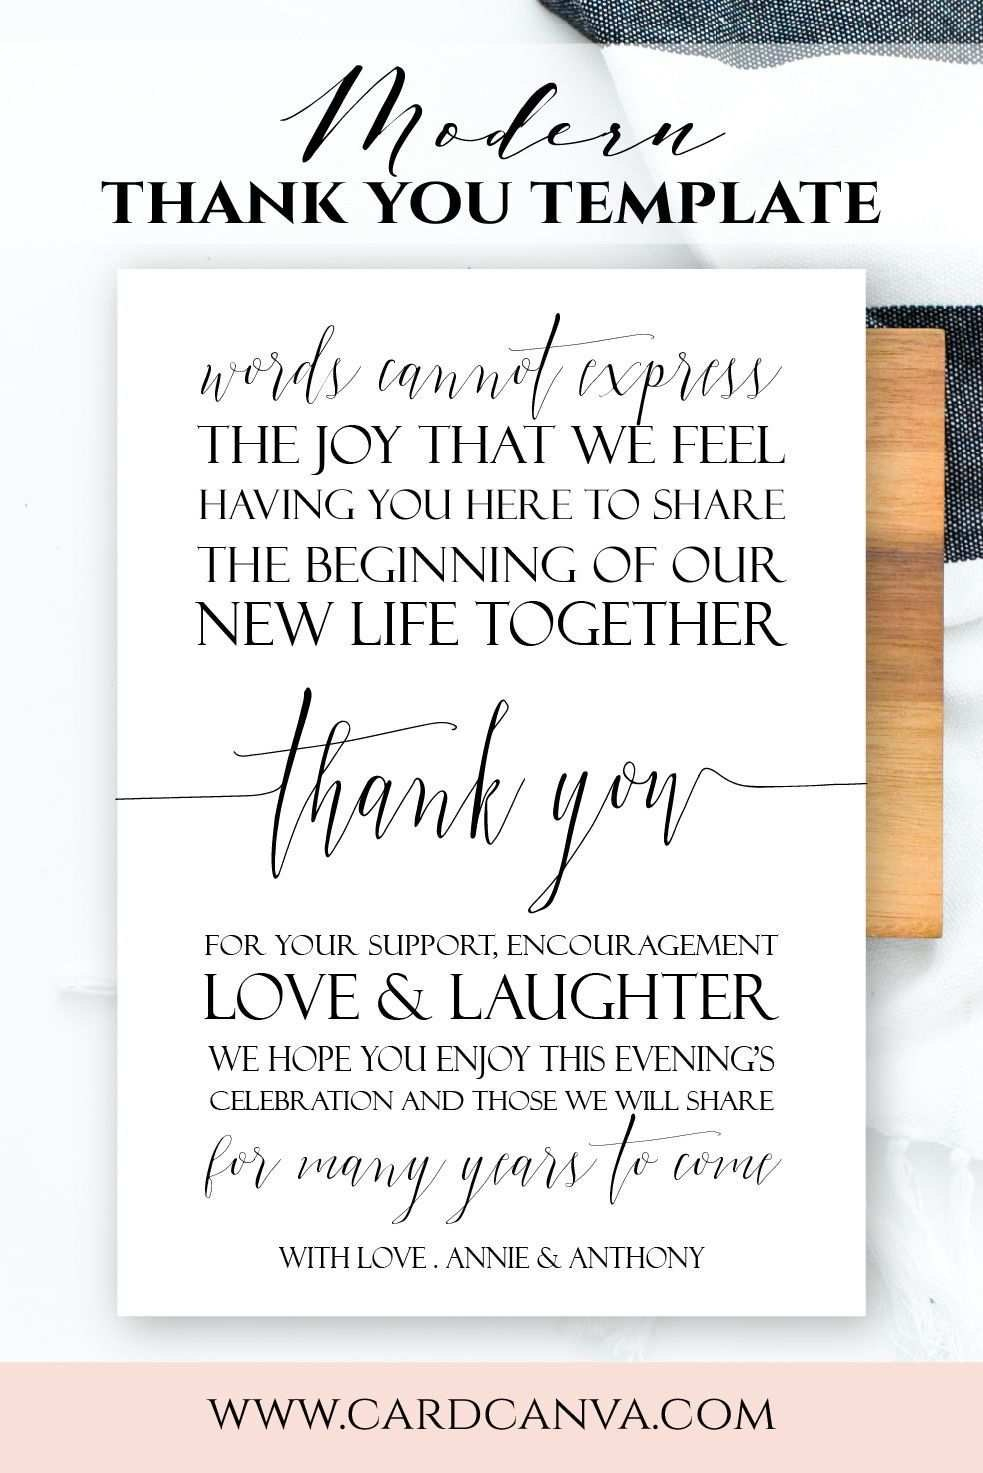 Thank You Card Template Publisher In Usmc Meal Card Template